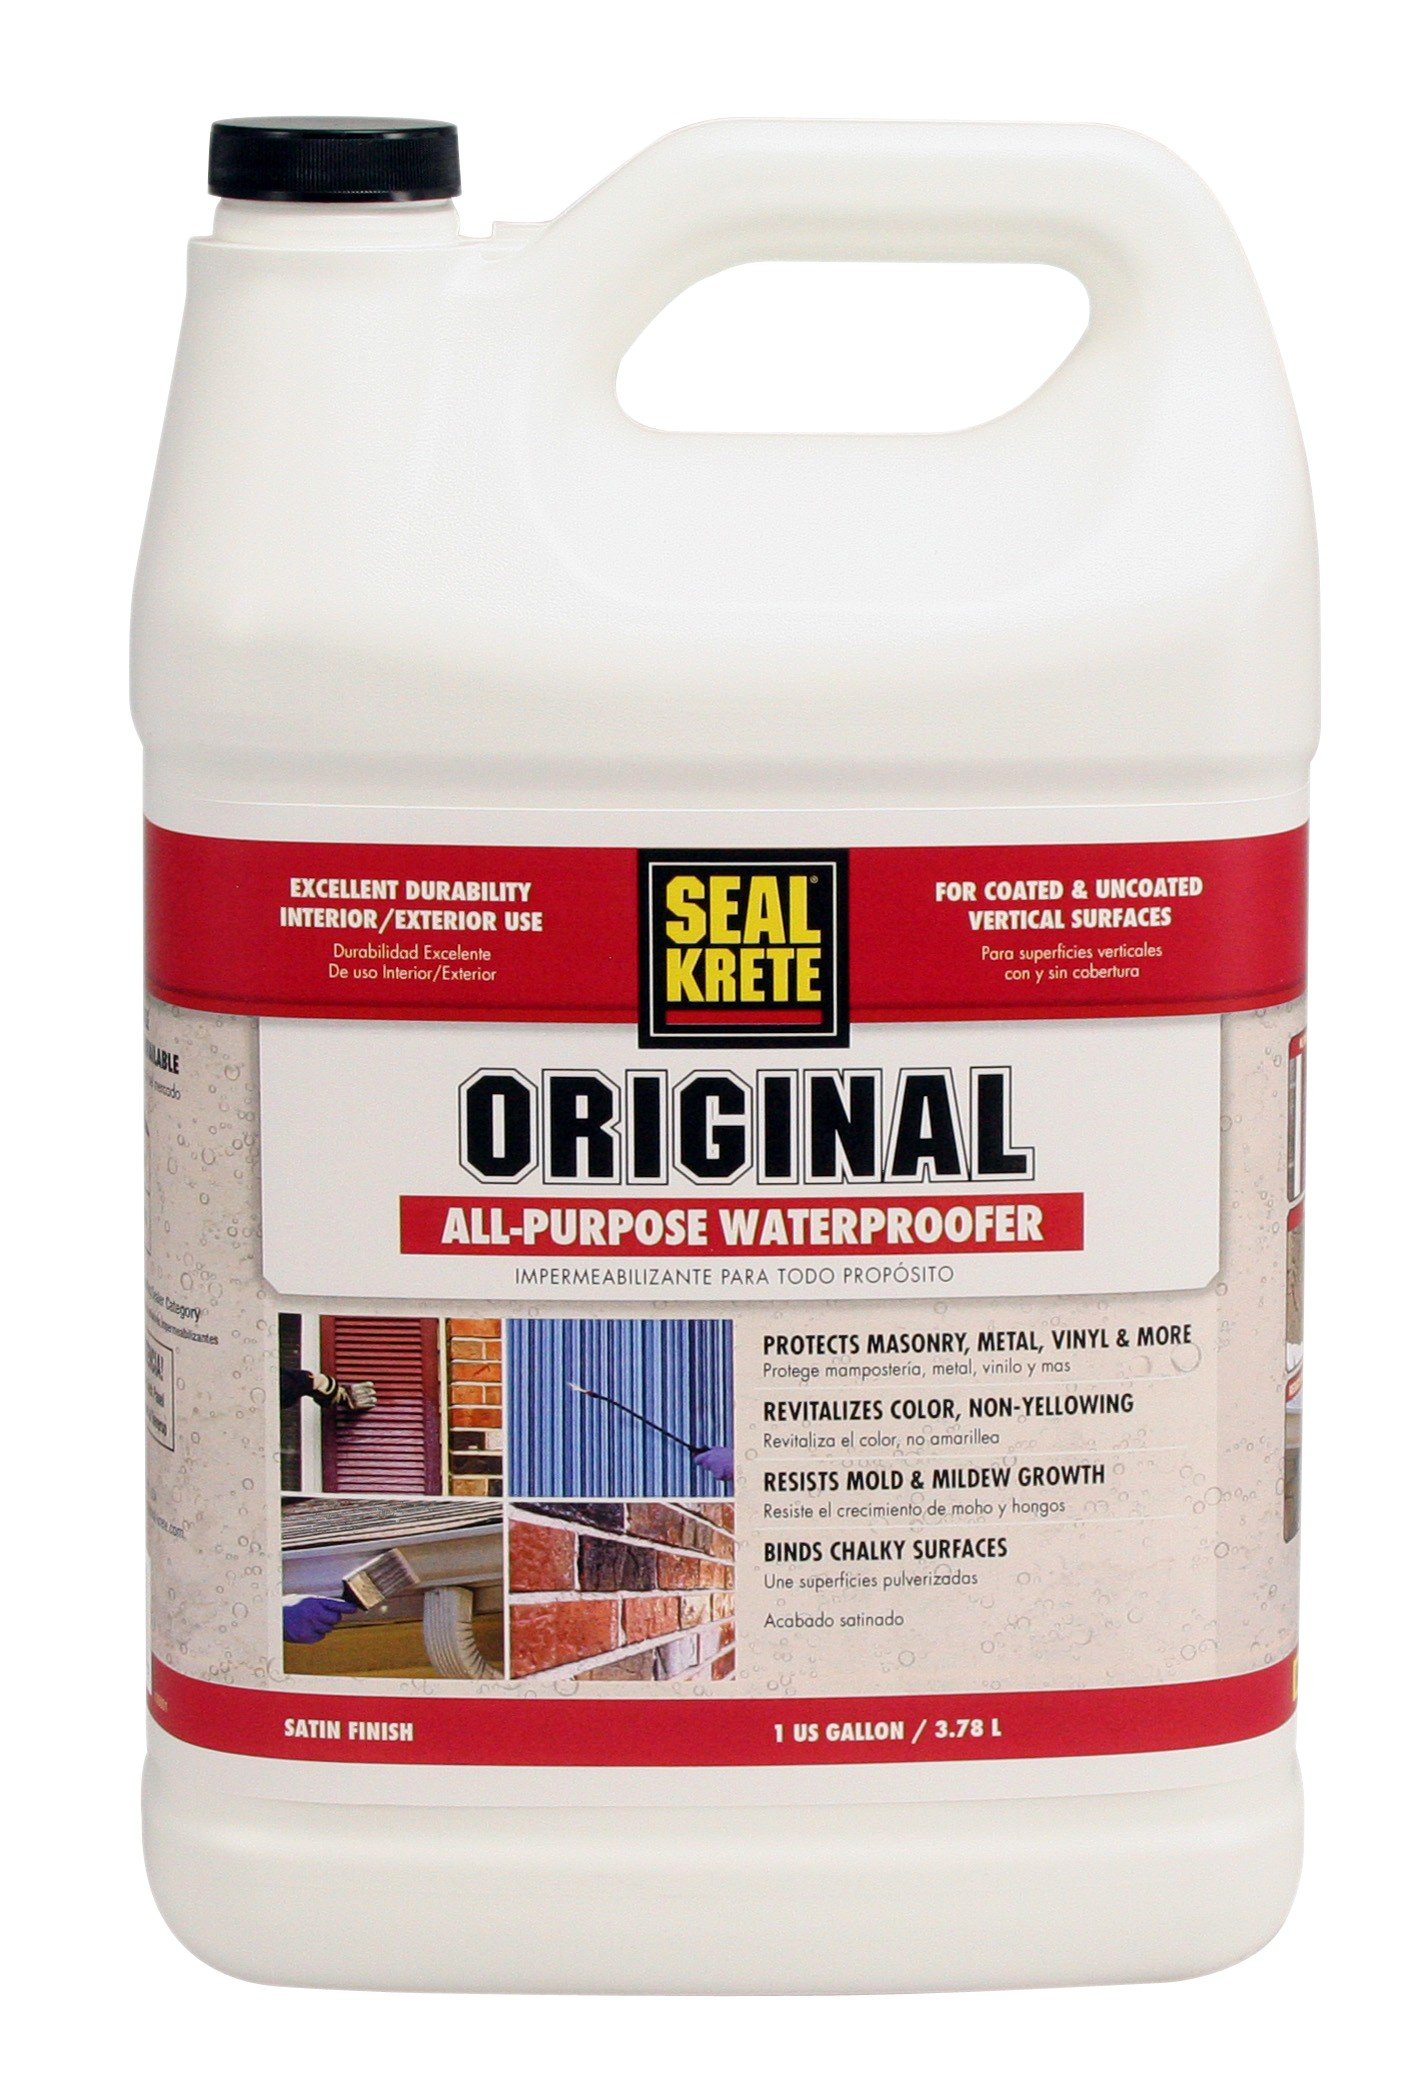 Seal-Krete 100001 Original Waterproofing Primer/Sealer, Gallon by Convenience